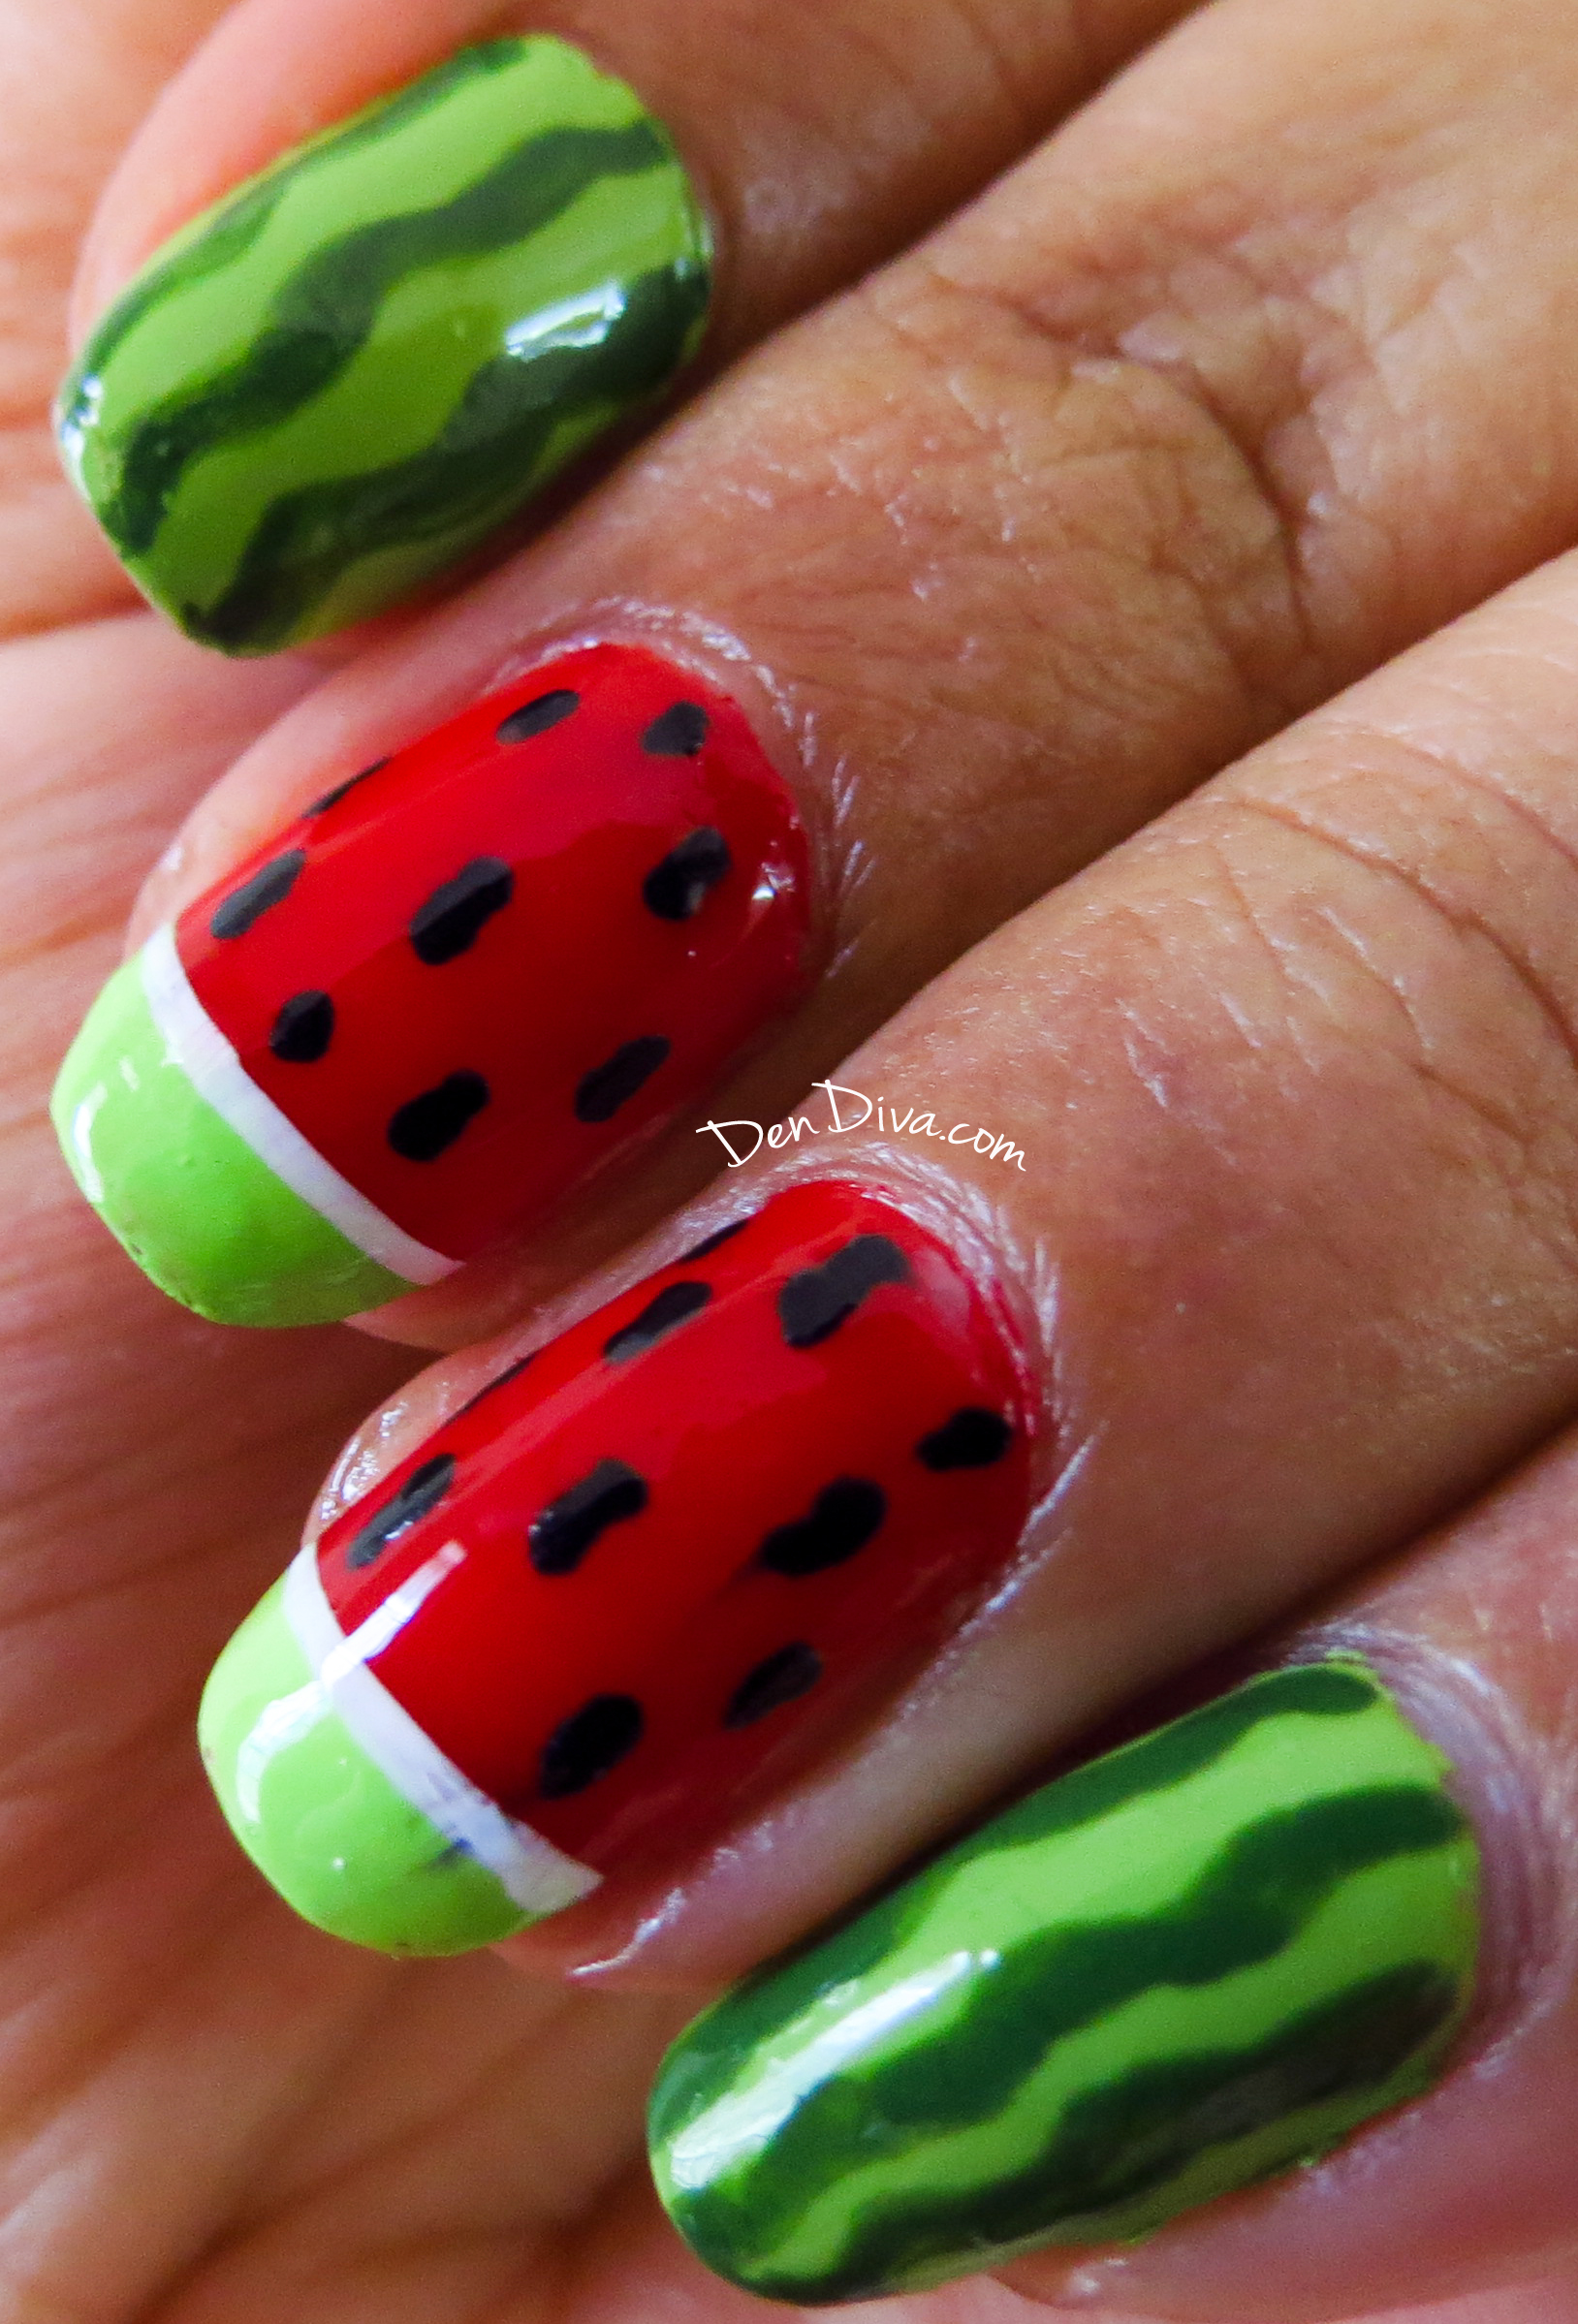 WaterMelon Nail Art Tutorial (Step by Step with pics) – DenDiva